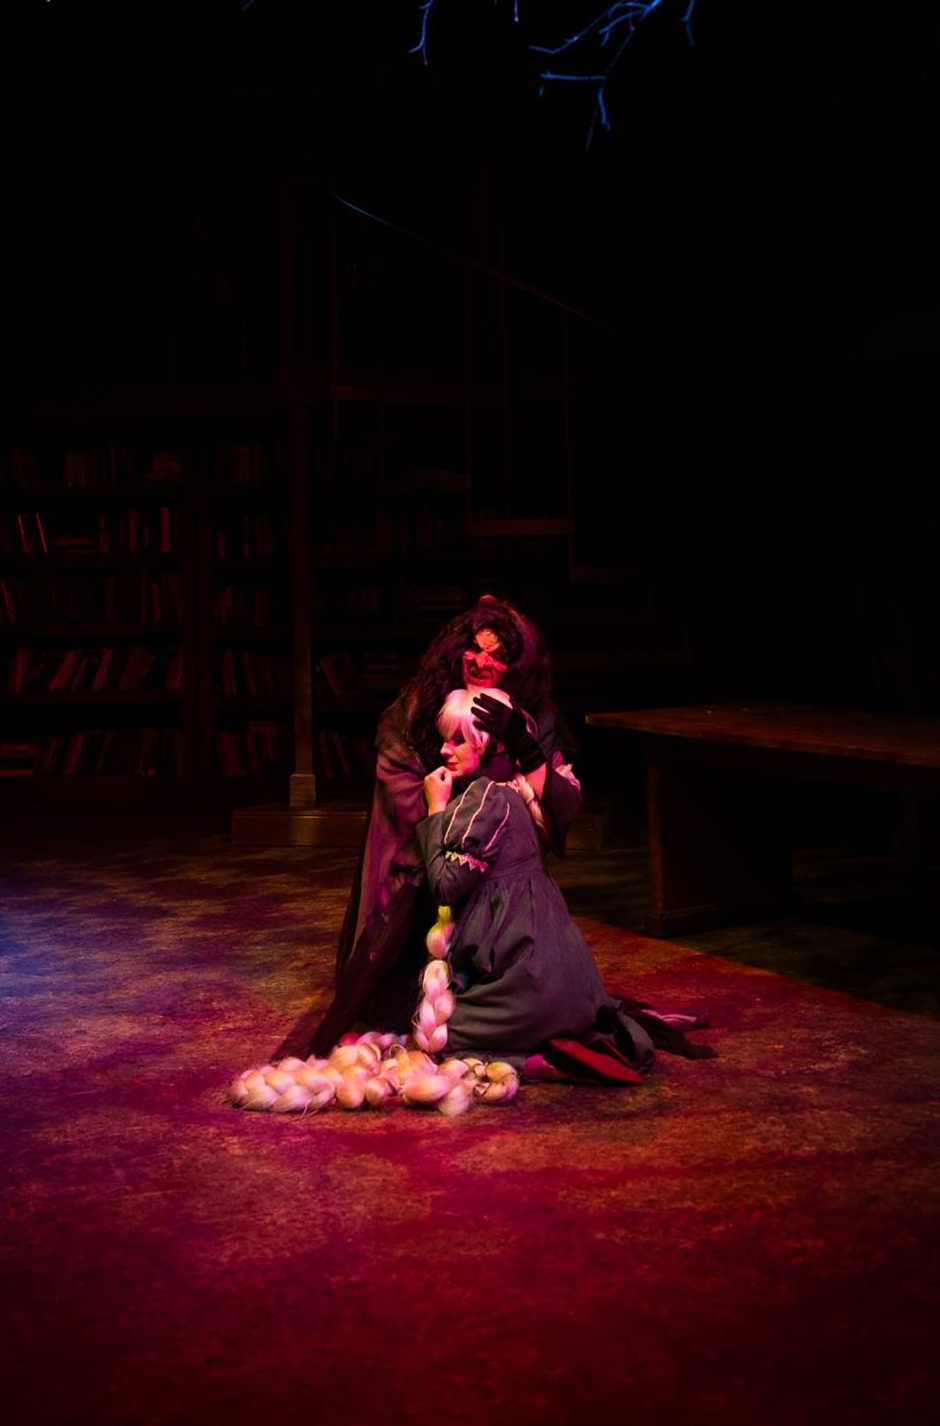 """Stay With Me."" Into the Woods at NextStop Theatre. Directed by Evan Hoffmann, Scenic Design by Steven Royal, Costumes by Kathy Dunlap."